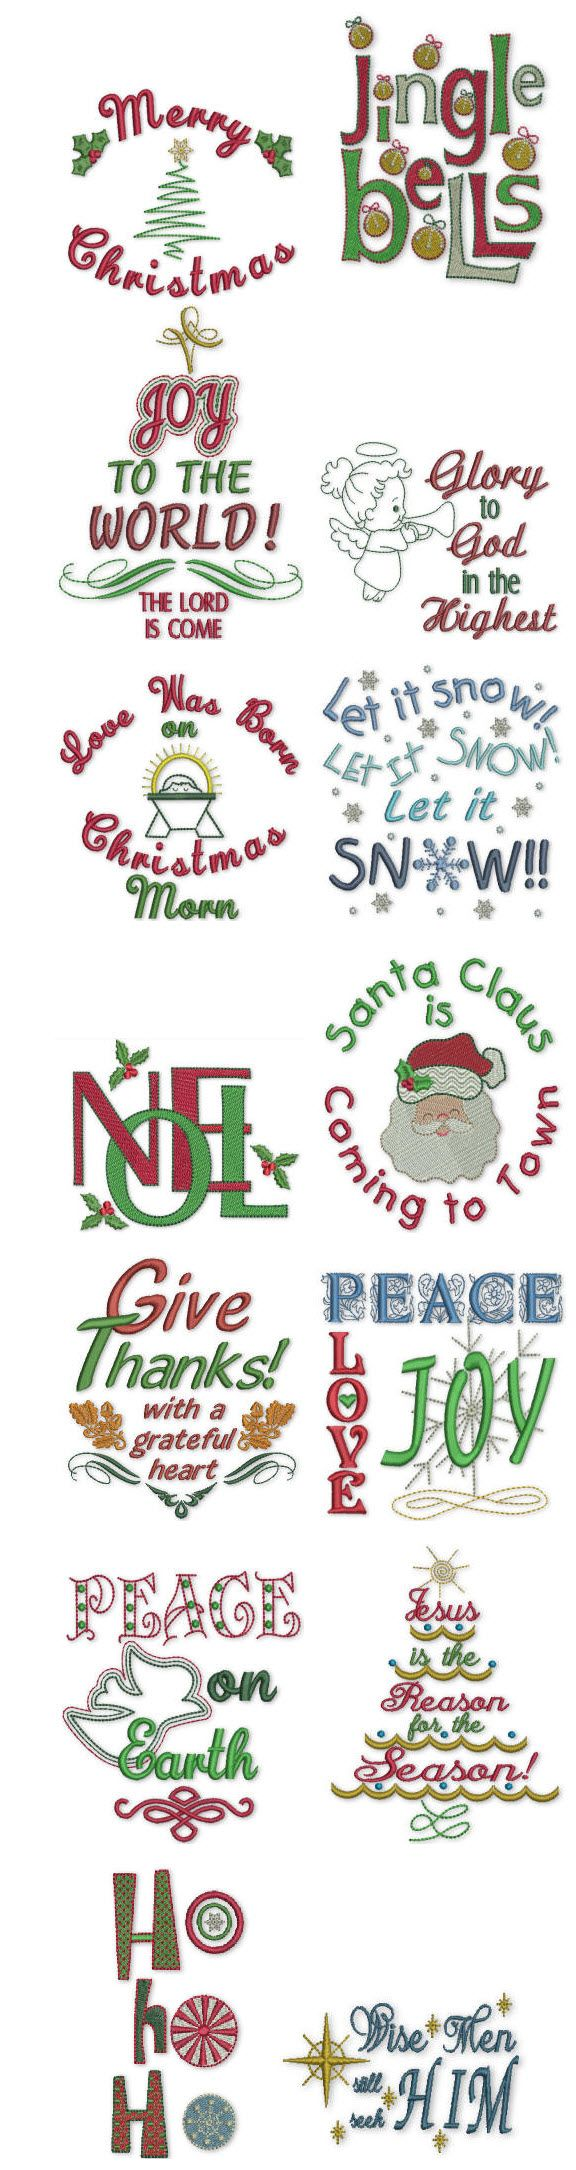 Embroidery | Free Machine Embroidery Designs | Holiday Expressions @Designs by…